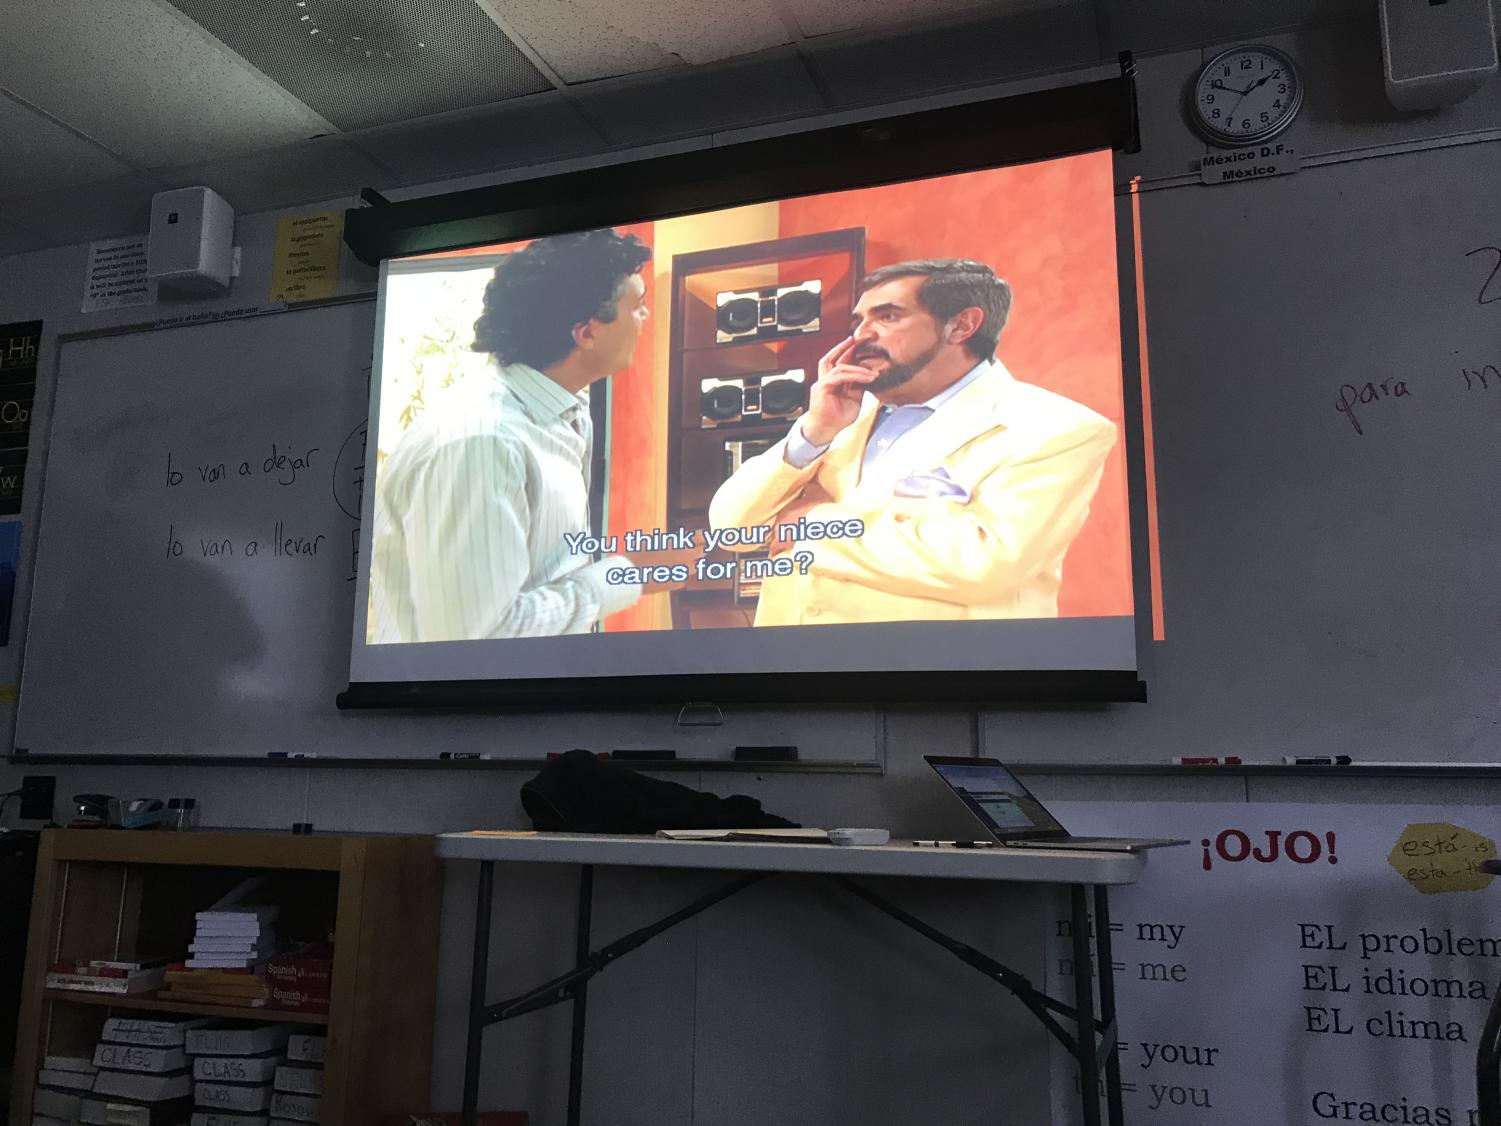 One of the many Telenova's watched in Spanish Soap Opera Club, plays on screen in Mr. Heupel's room during advisory.